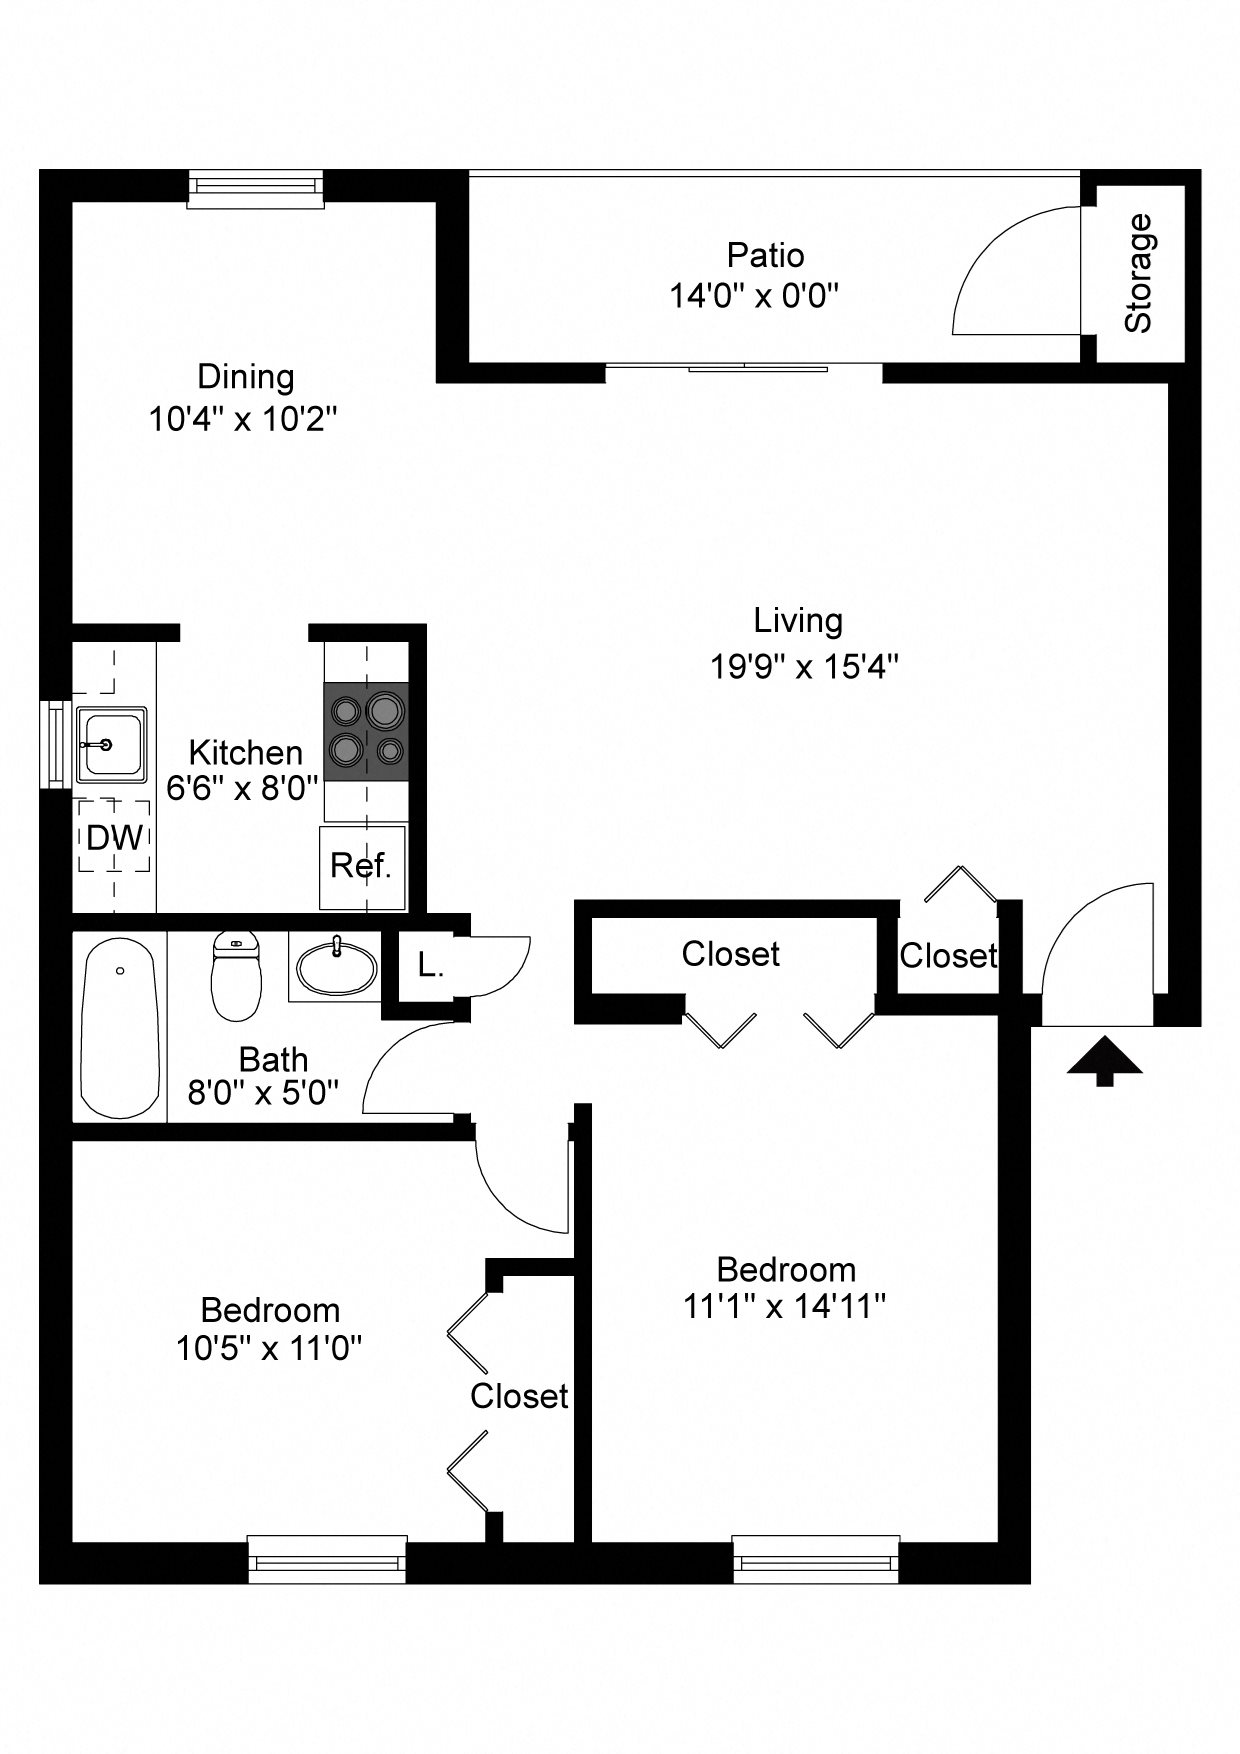 floor plans of georgetown apartments in williamsville, ny